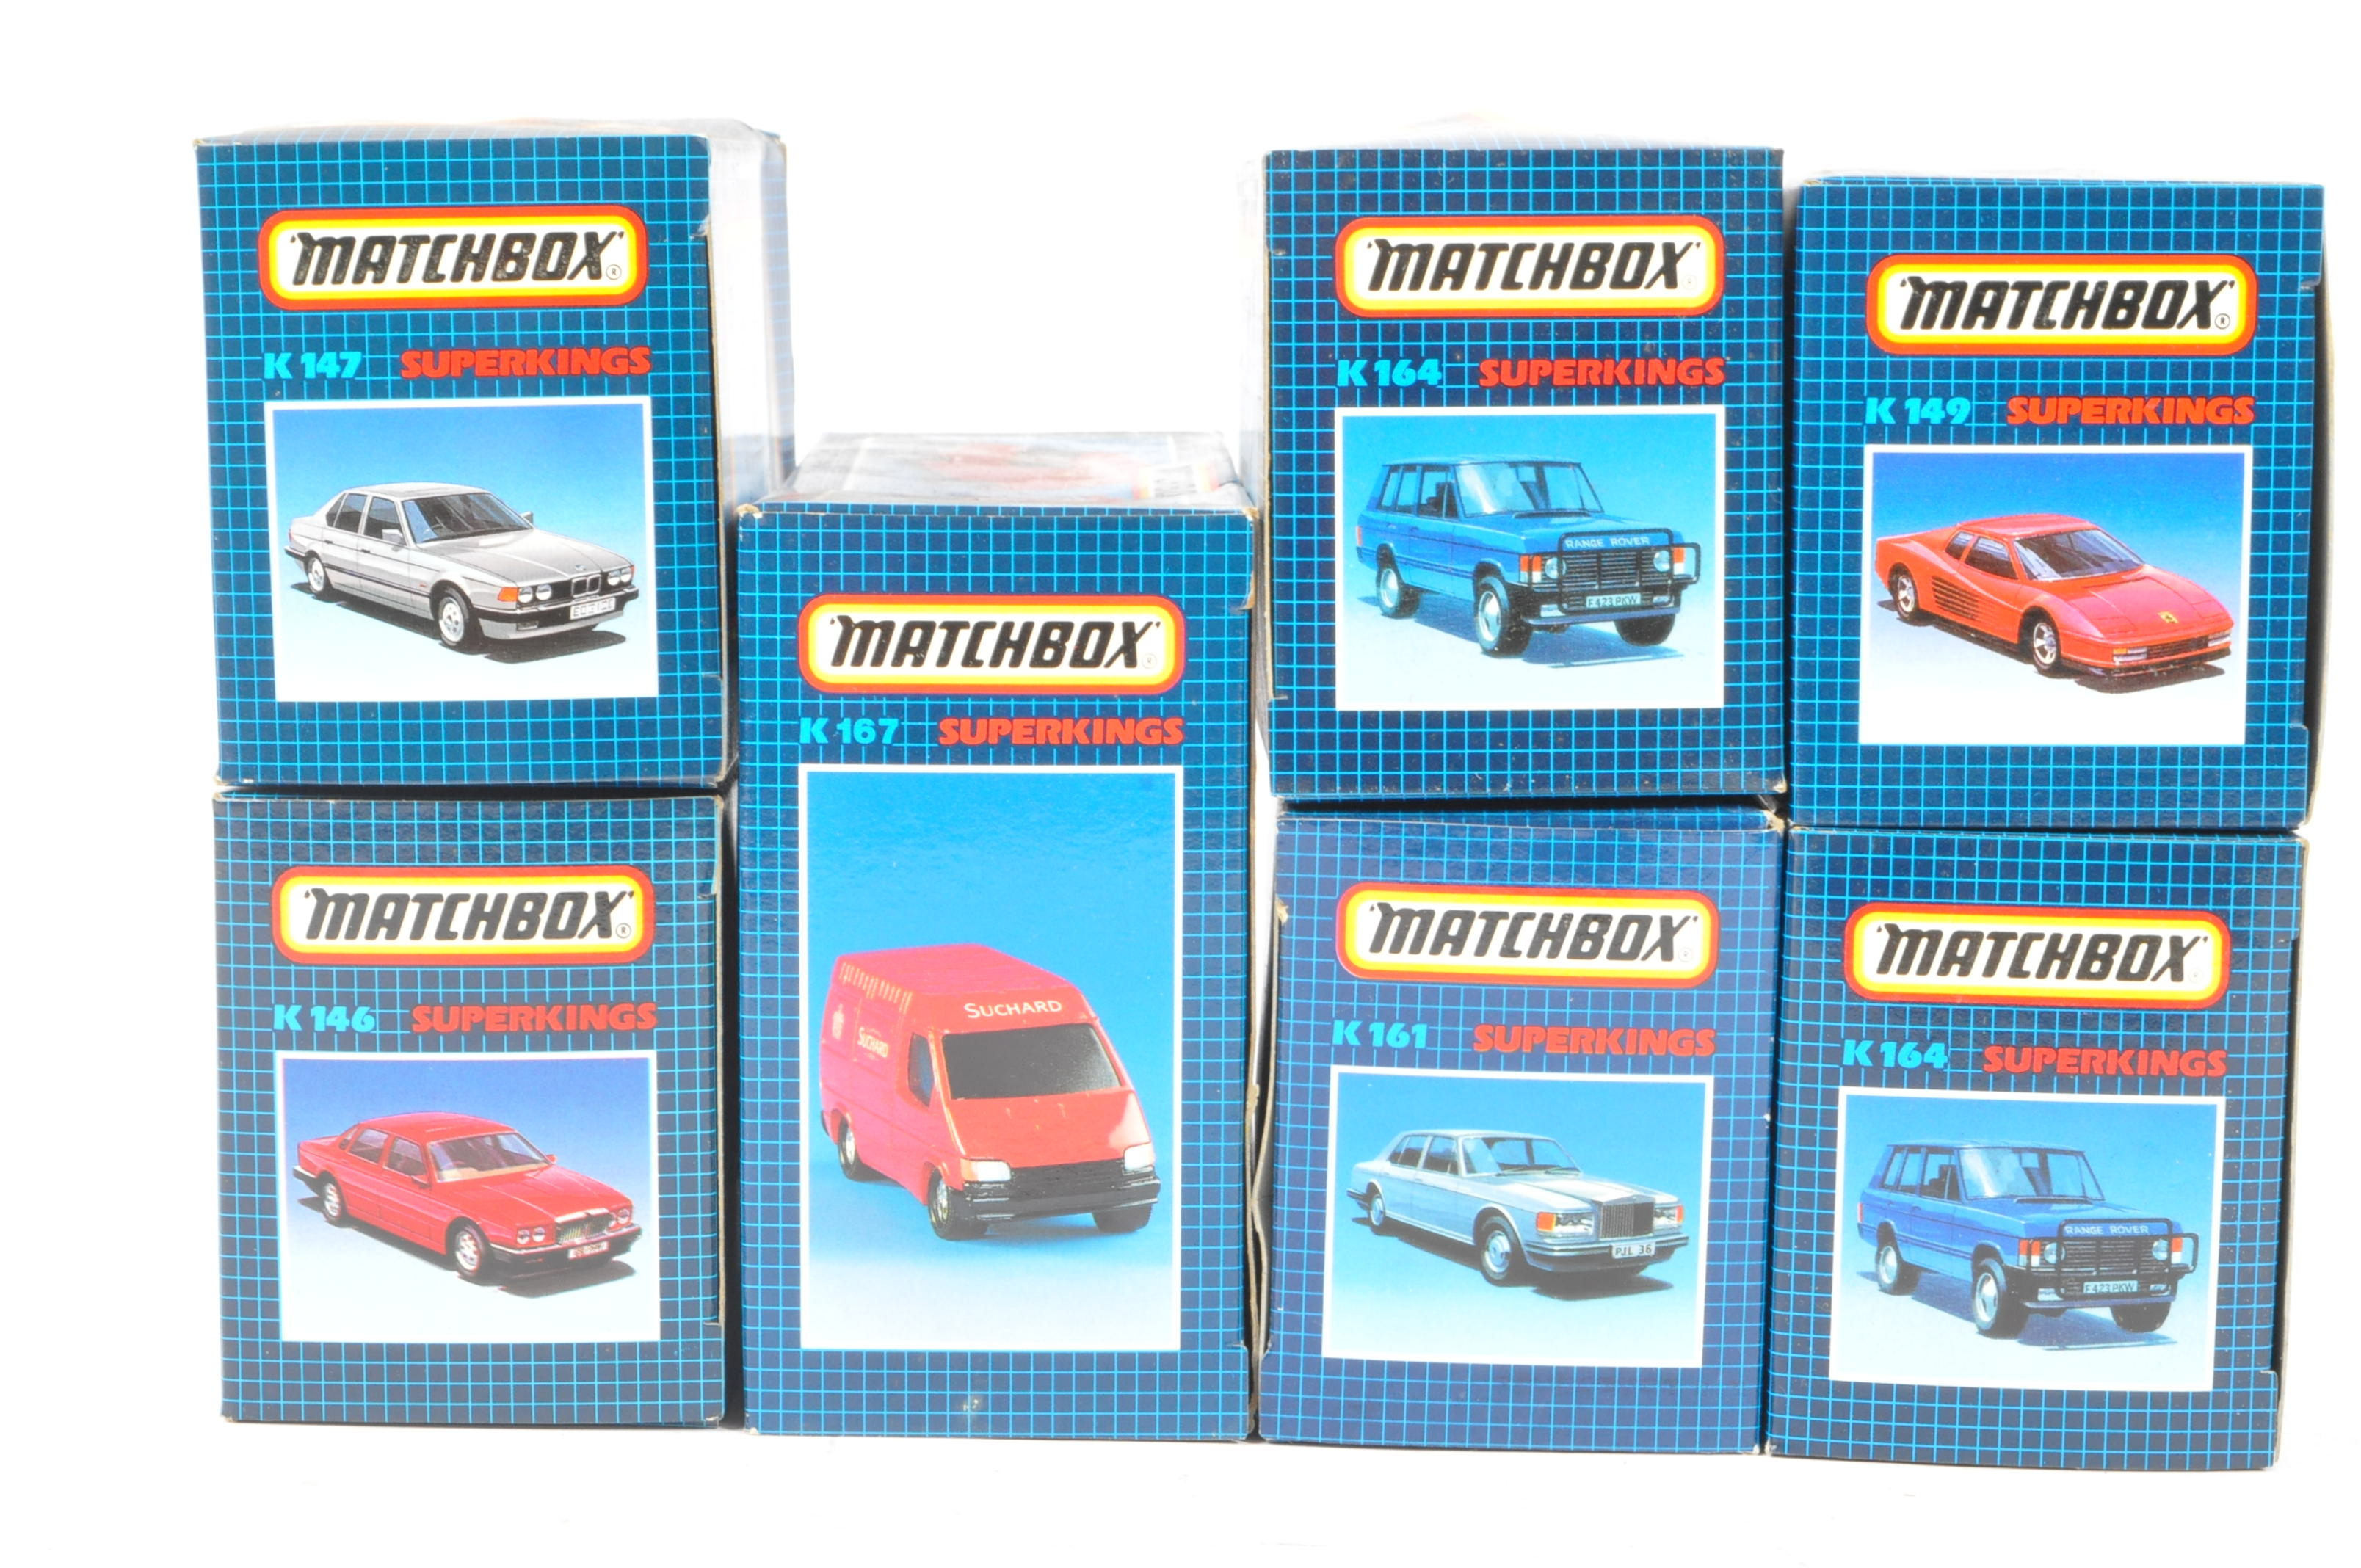 COLLECTION OF VINTAGE MATCHBOX SUPERKINGS DIECAST MODELS - Image 4 of 6